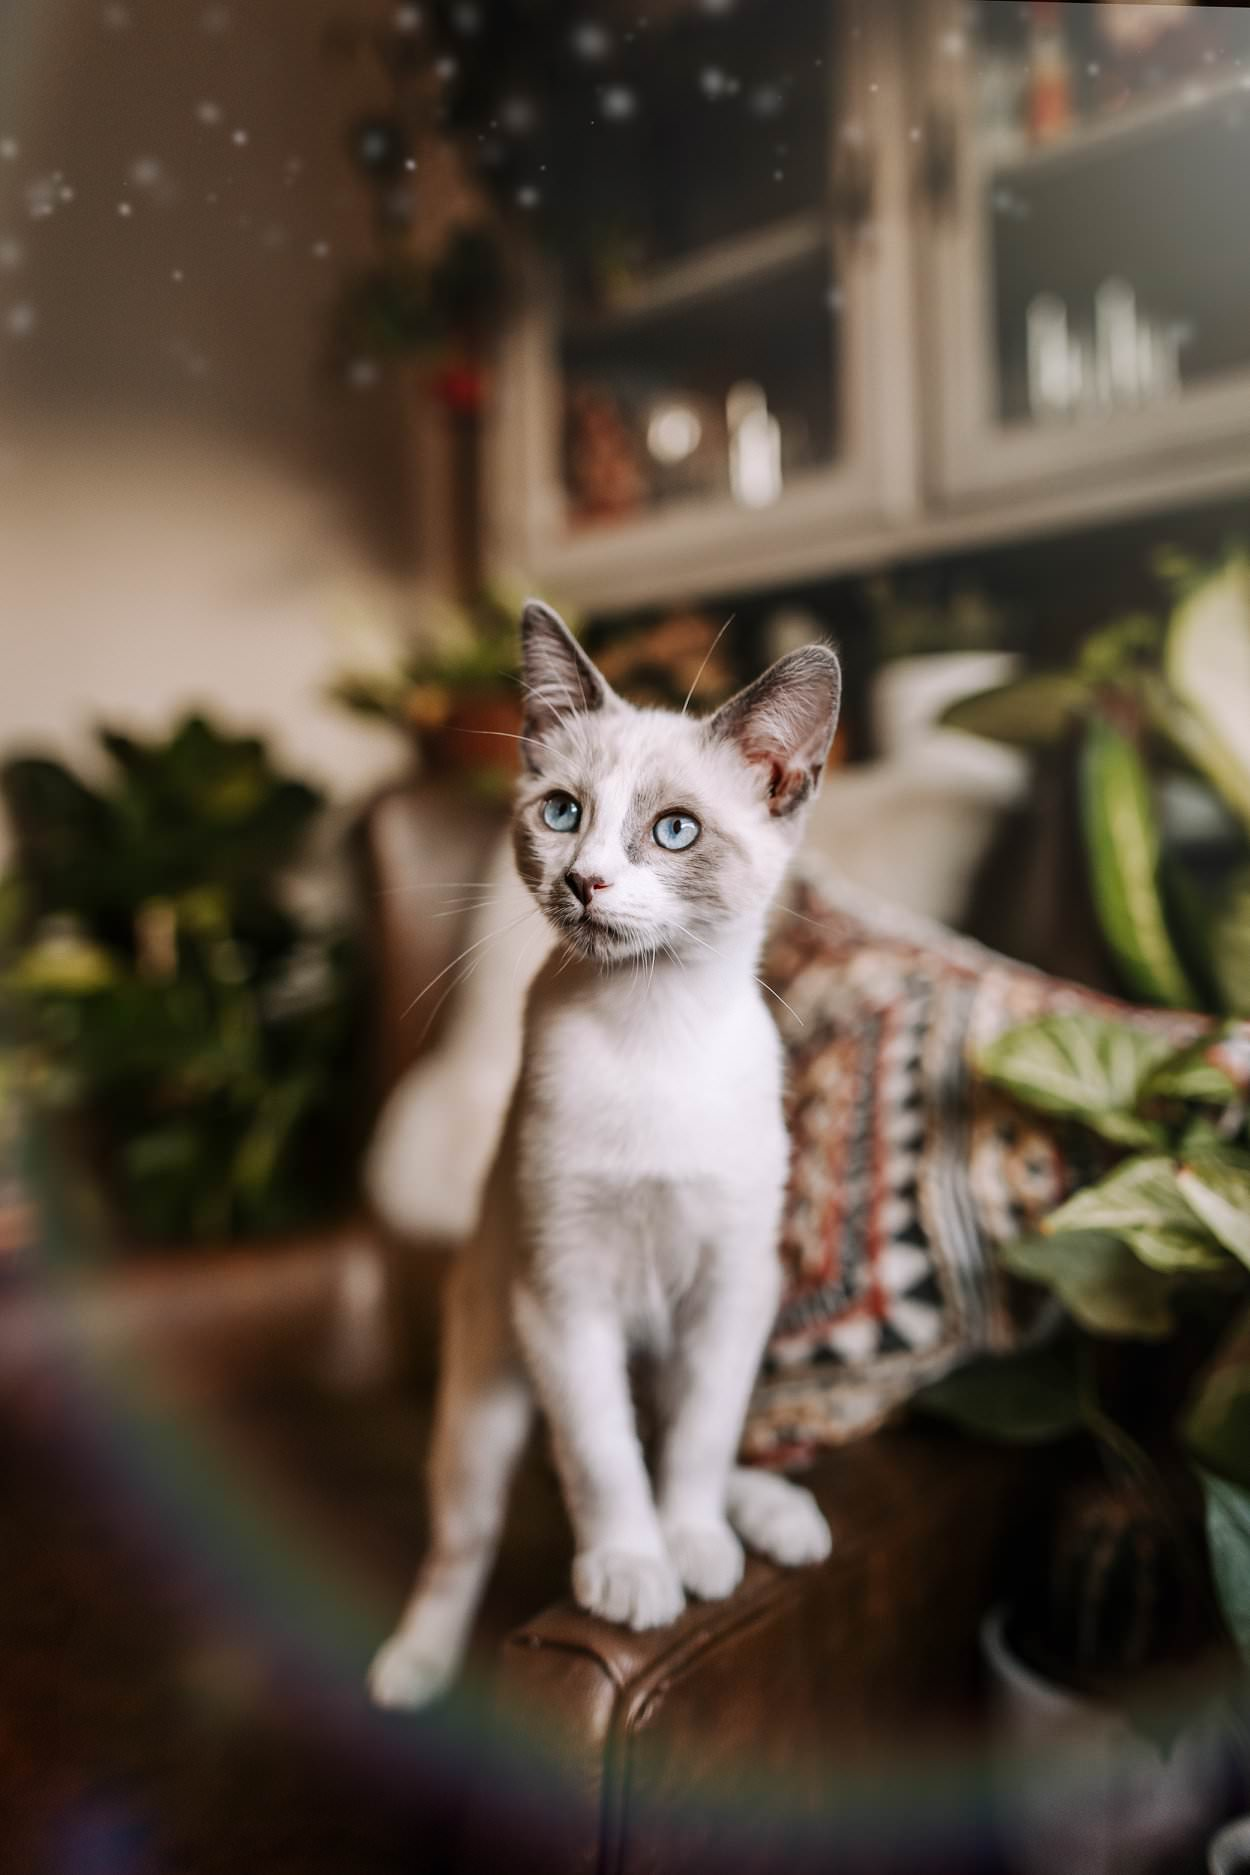 a white kitten with blue eyes stands on a couch in a living room